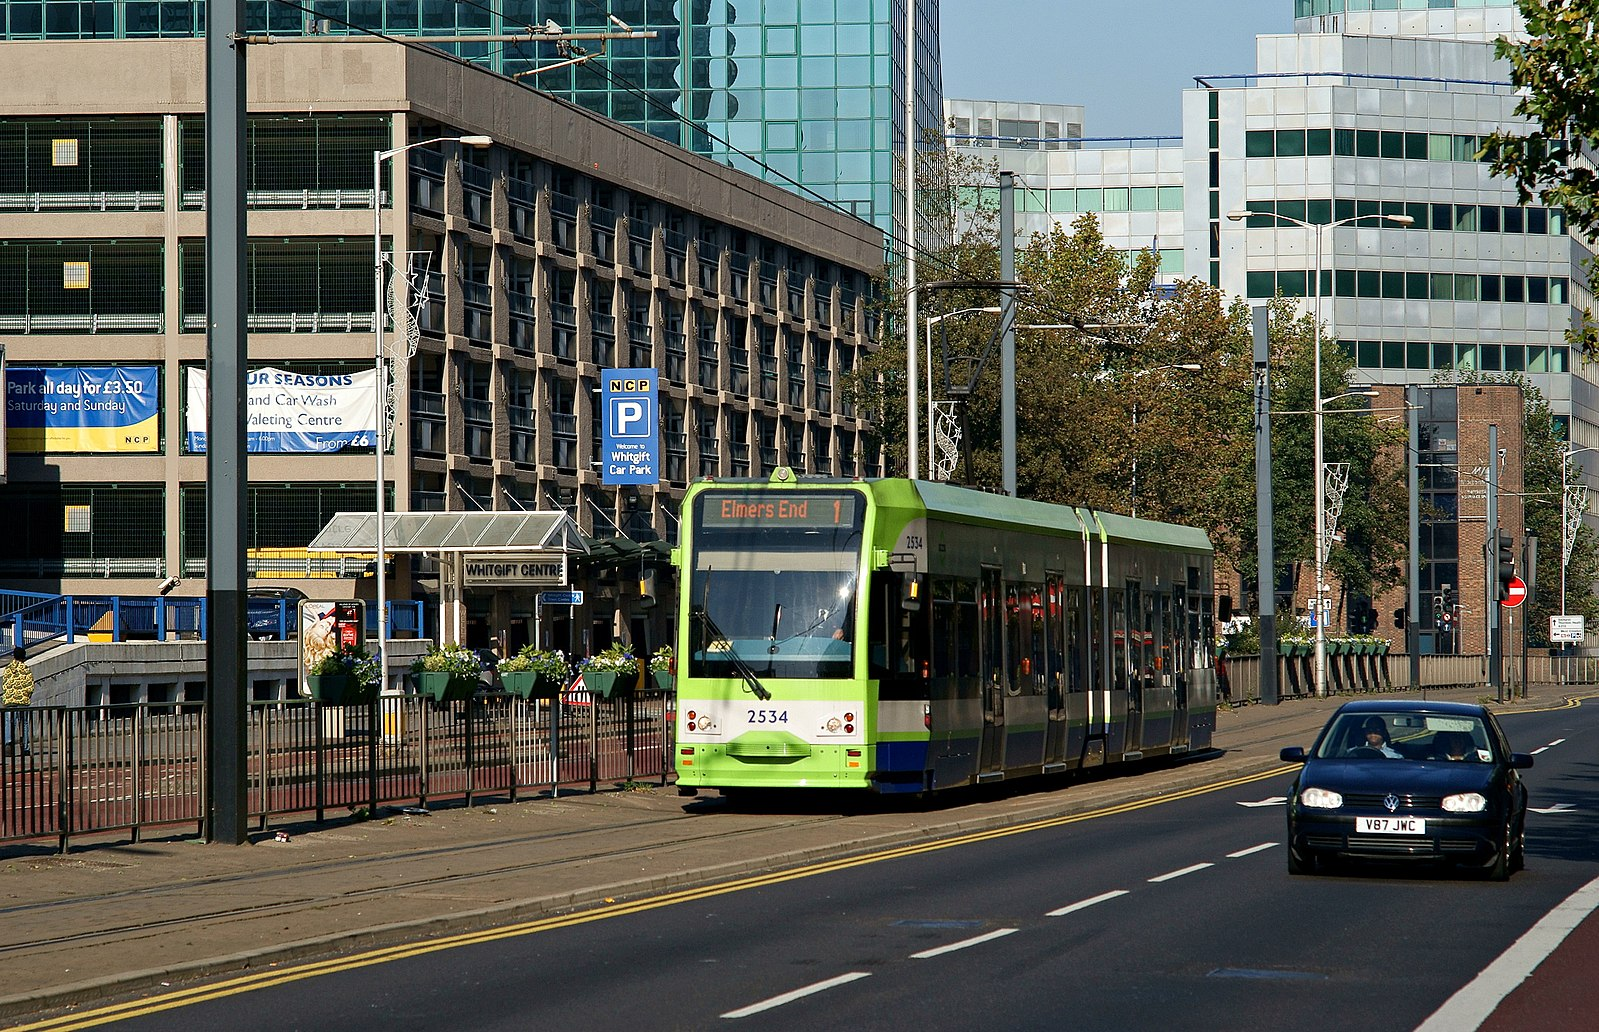 Tram_in_Wellesley_Road,_Croydon_(geograph_2657910).jpg